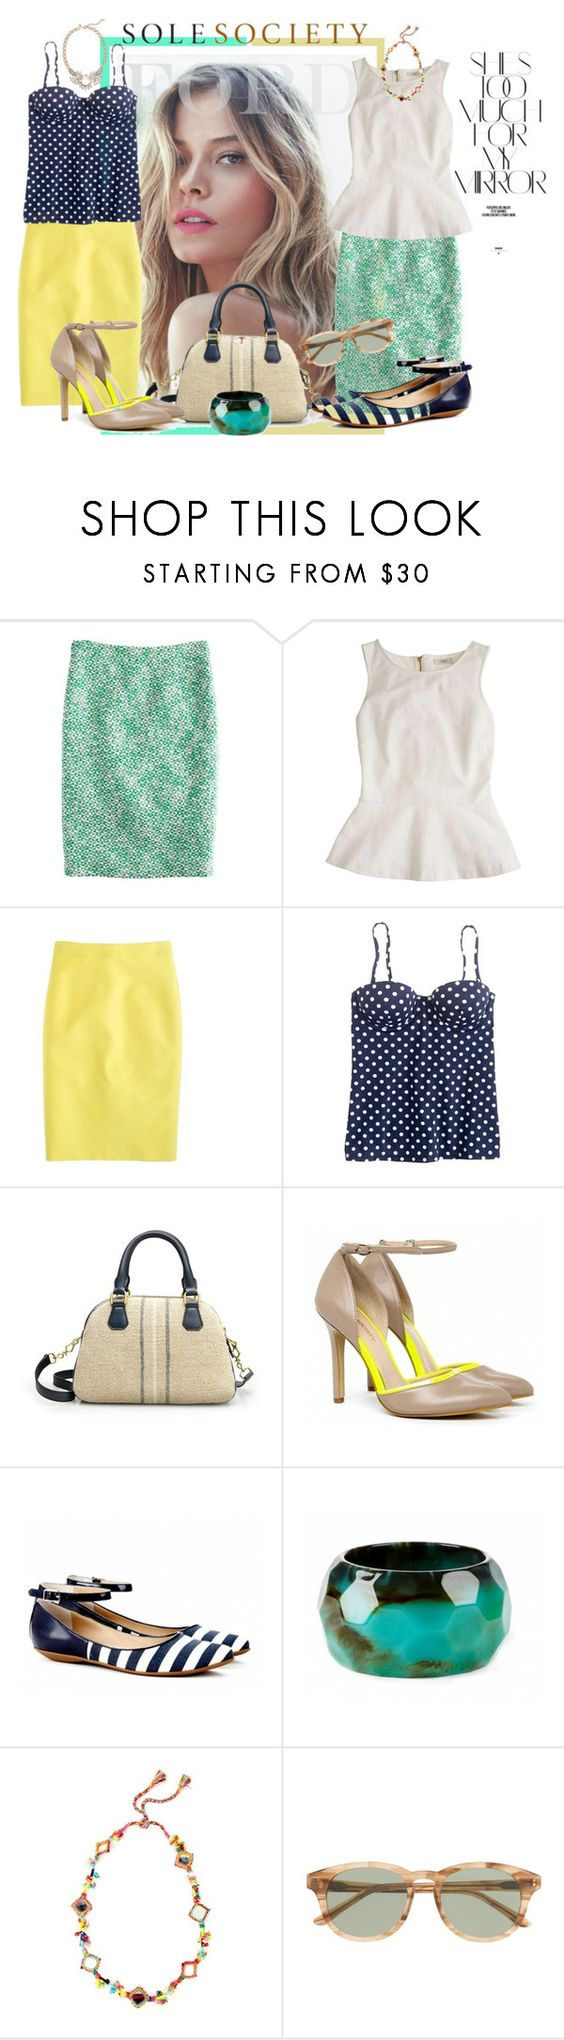 """Sole Society Meet J.CREW"" by fashiontake-out ❤ liked on Polyvore featuring Rika, J.Crew, Sole Society, pencil skirts, top handle bags, pointed-toe flats, platform sandals, j.crew and sole society"